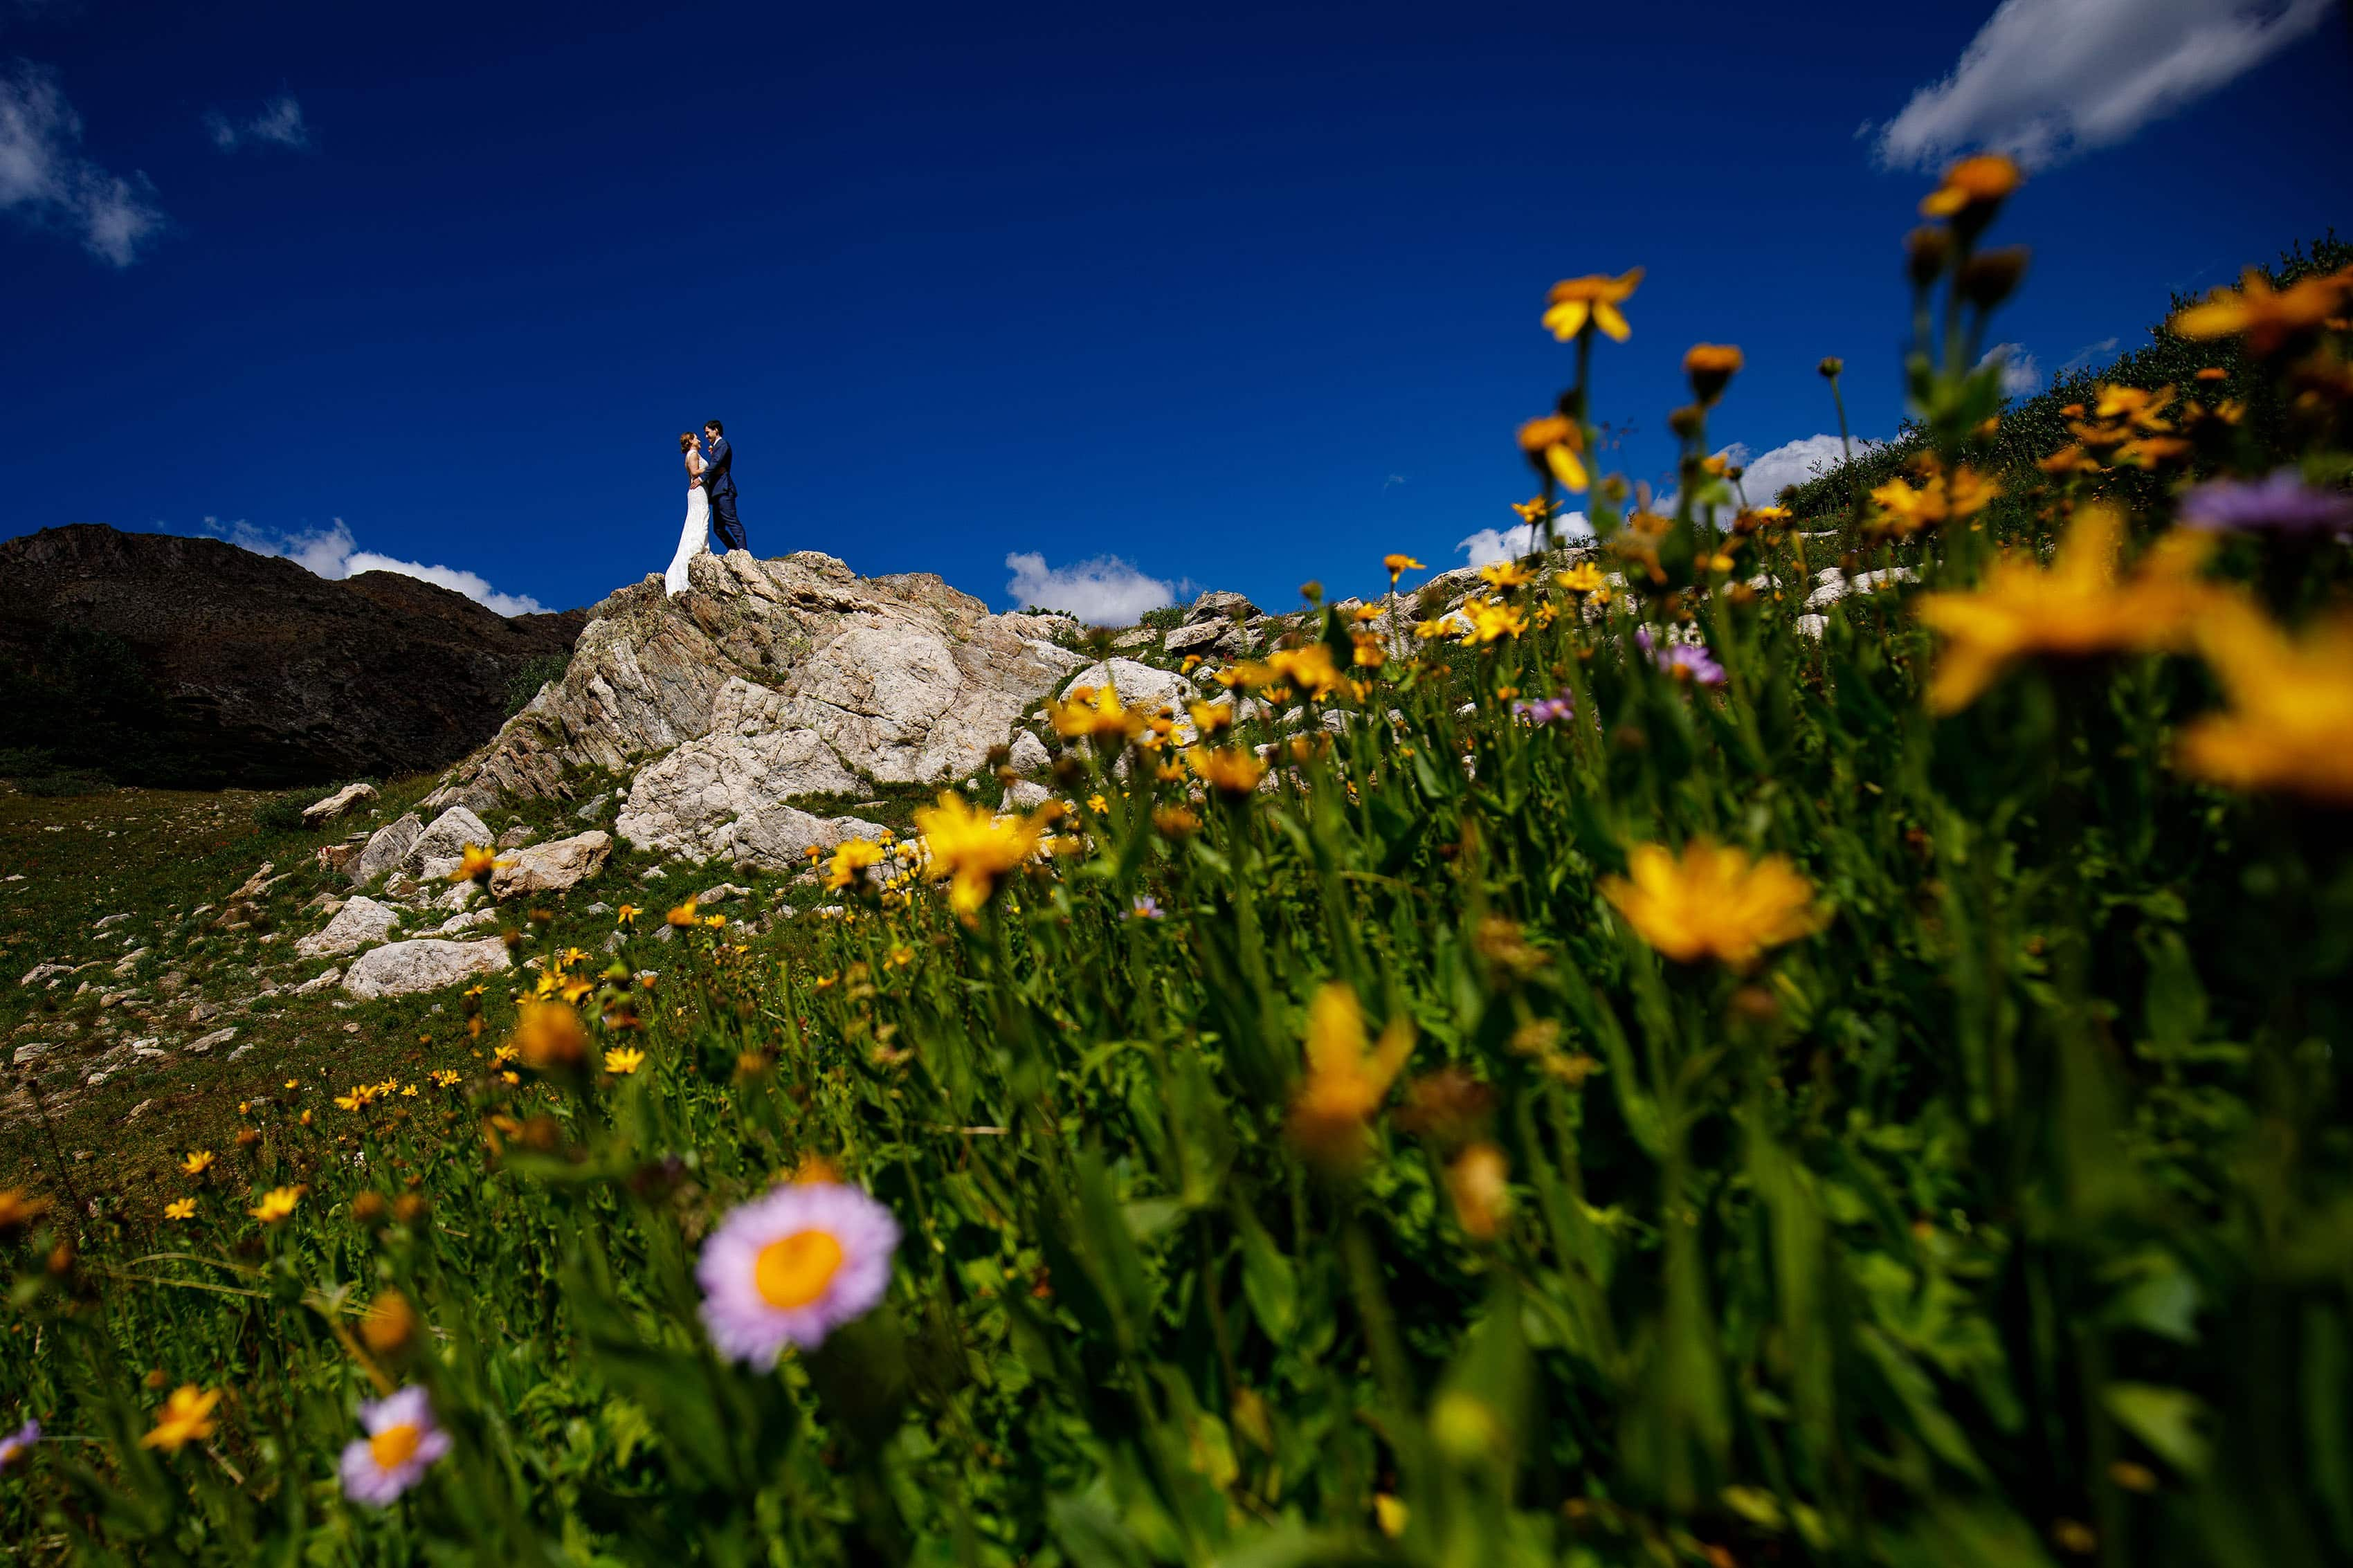 Wildflowers in full bloom as the bride and groom stand on a rock on Loveland Pass